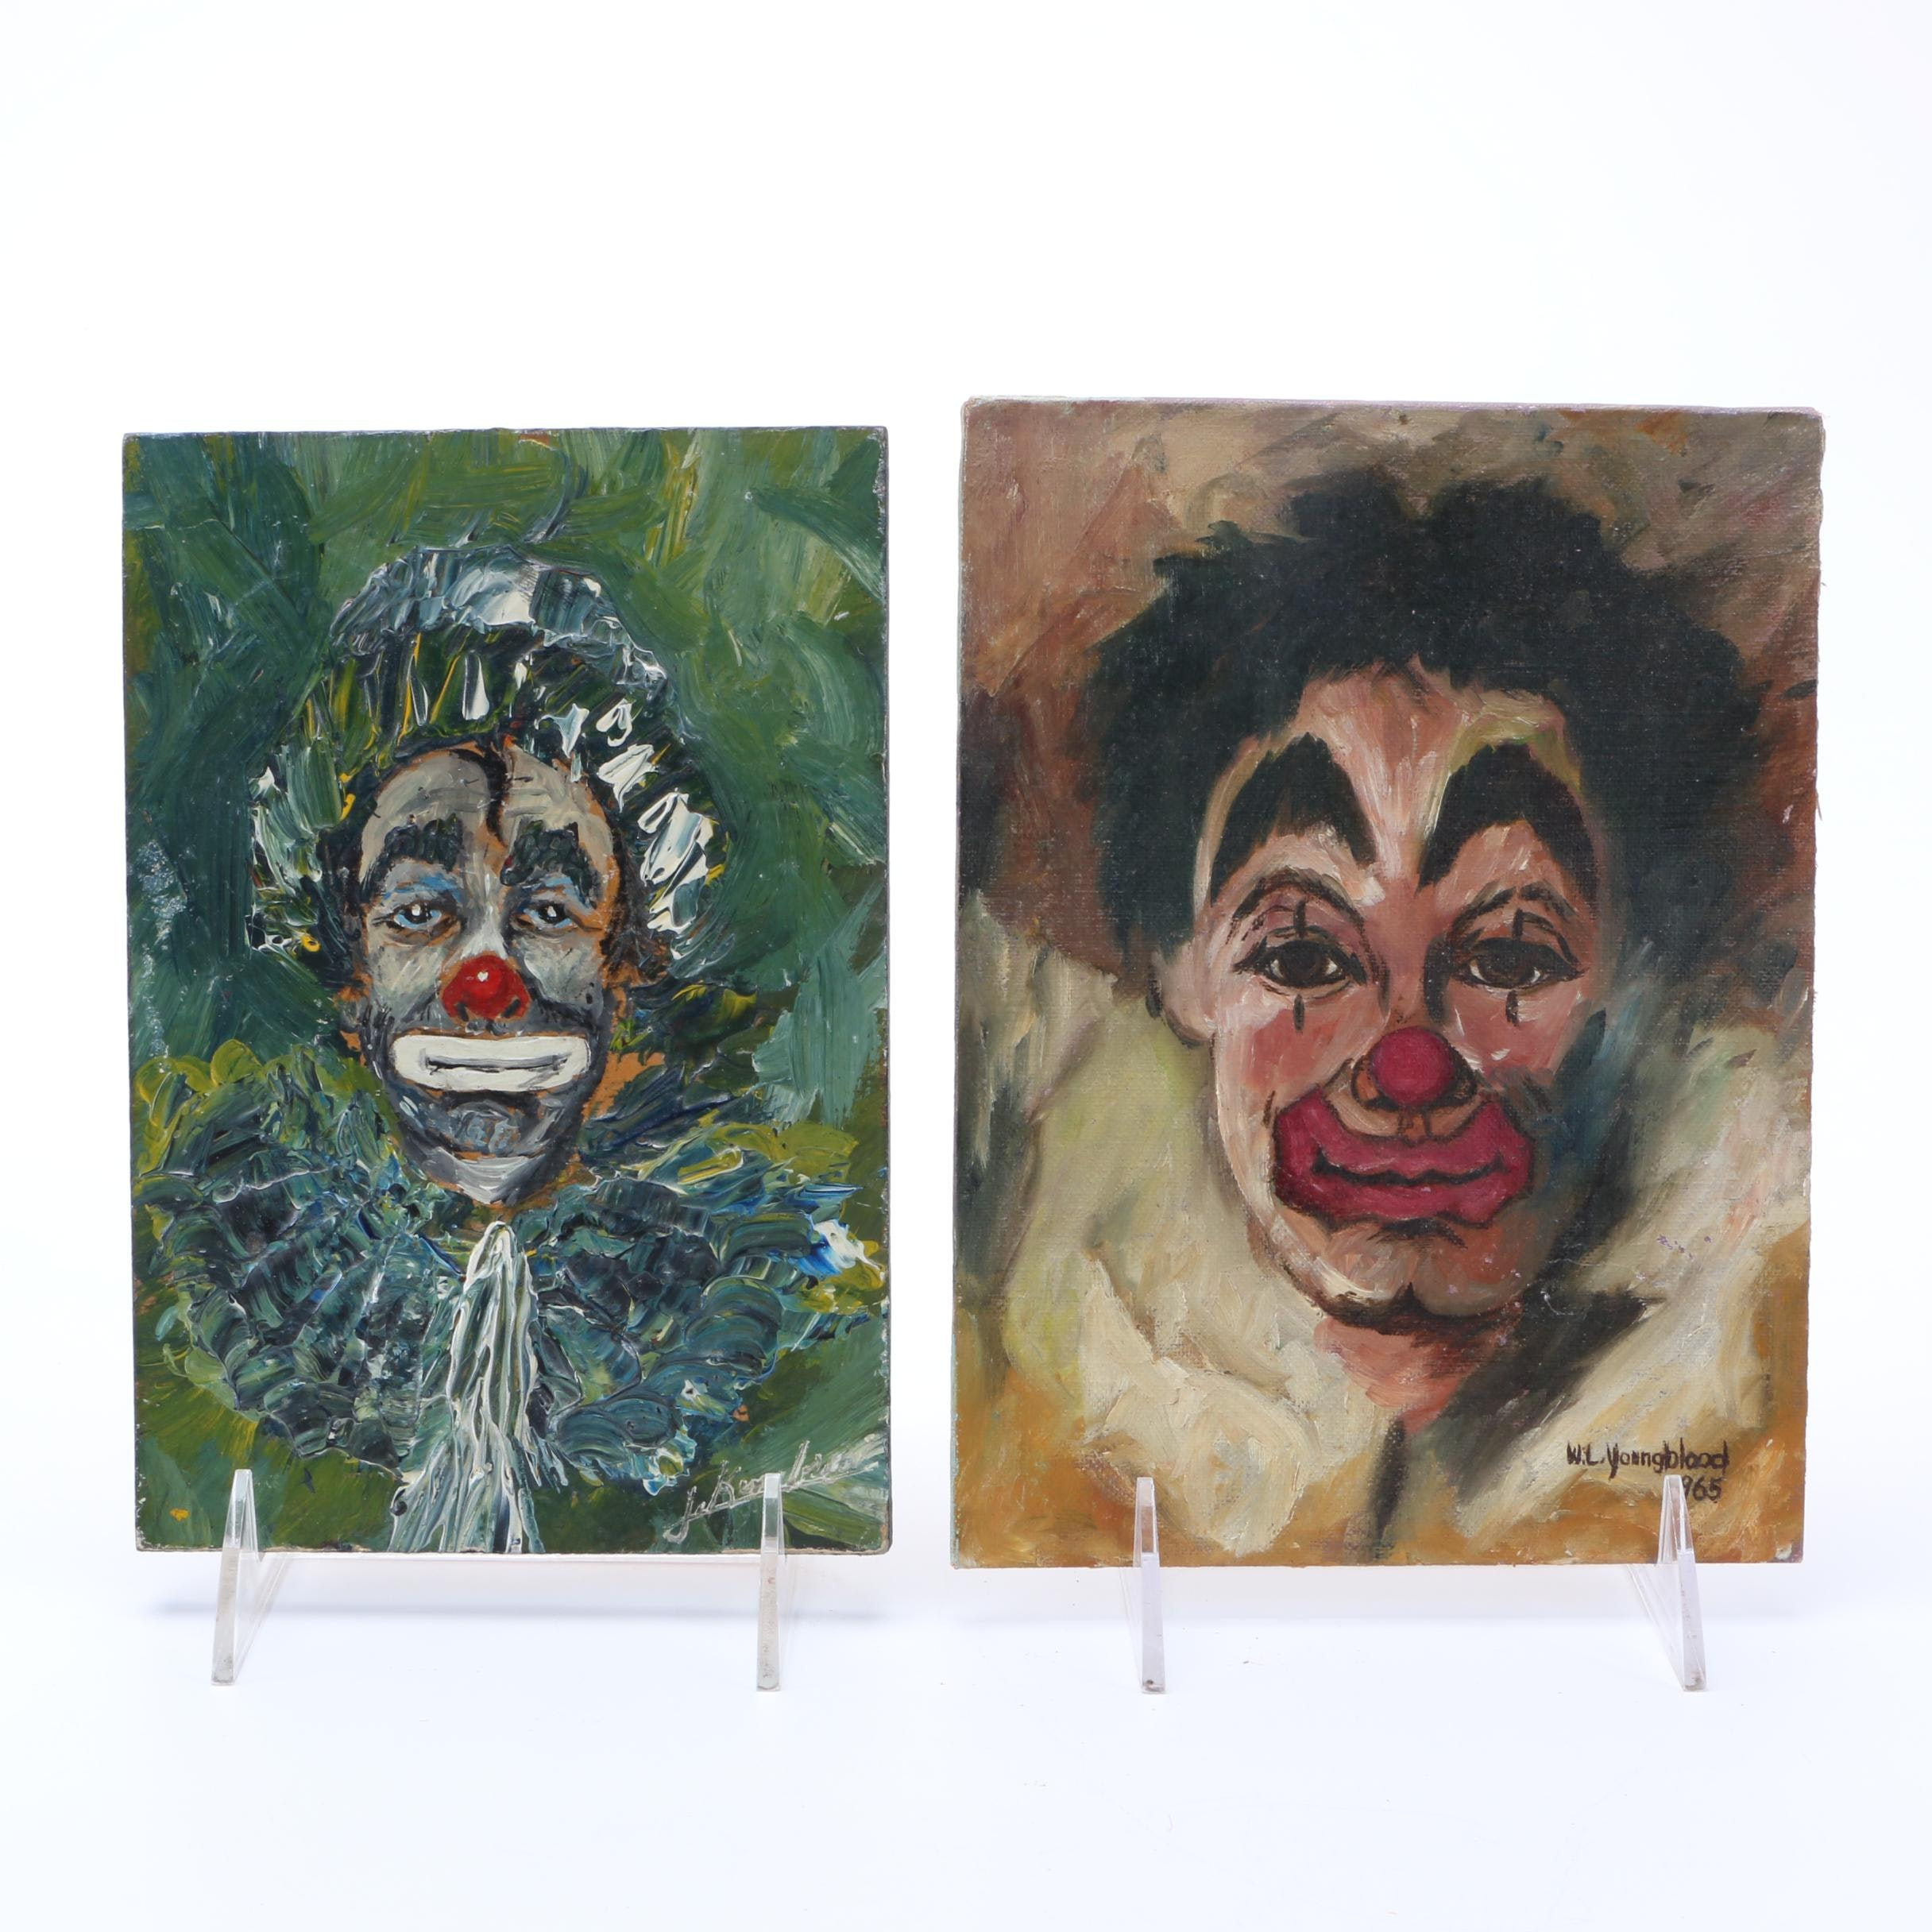 Expressive Vintage Oil Paintings on Board of Clowns